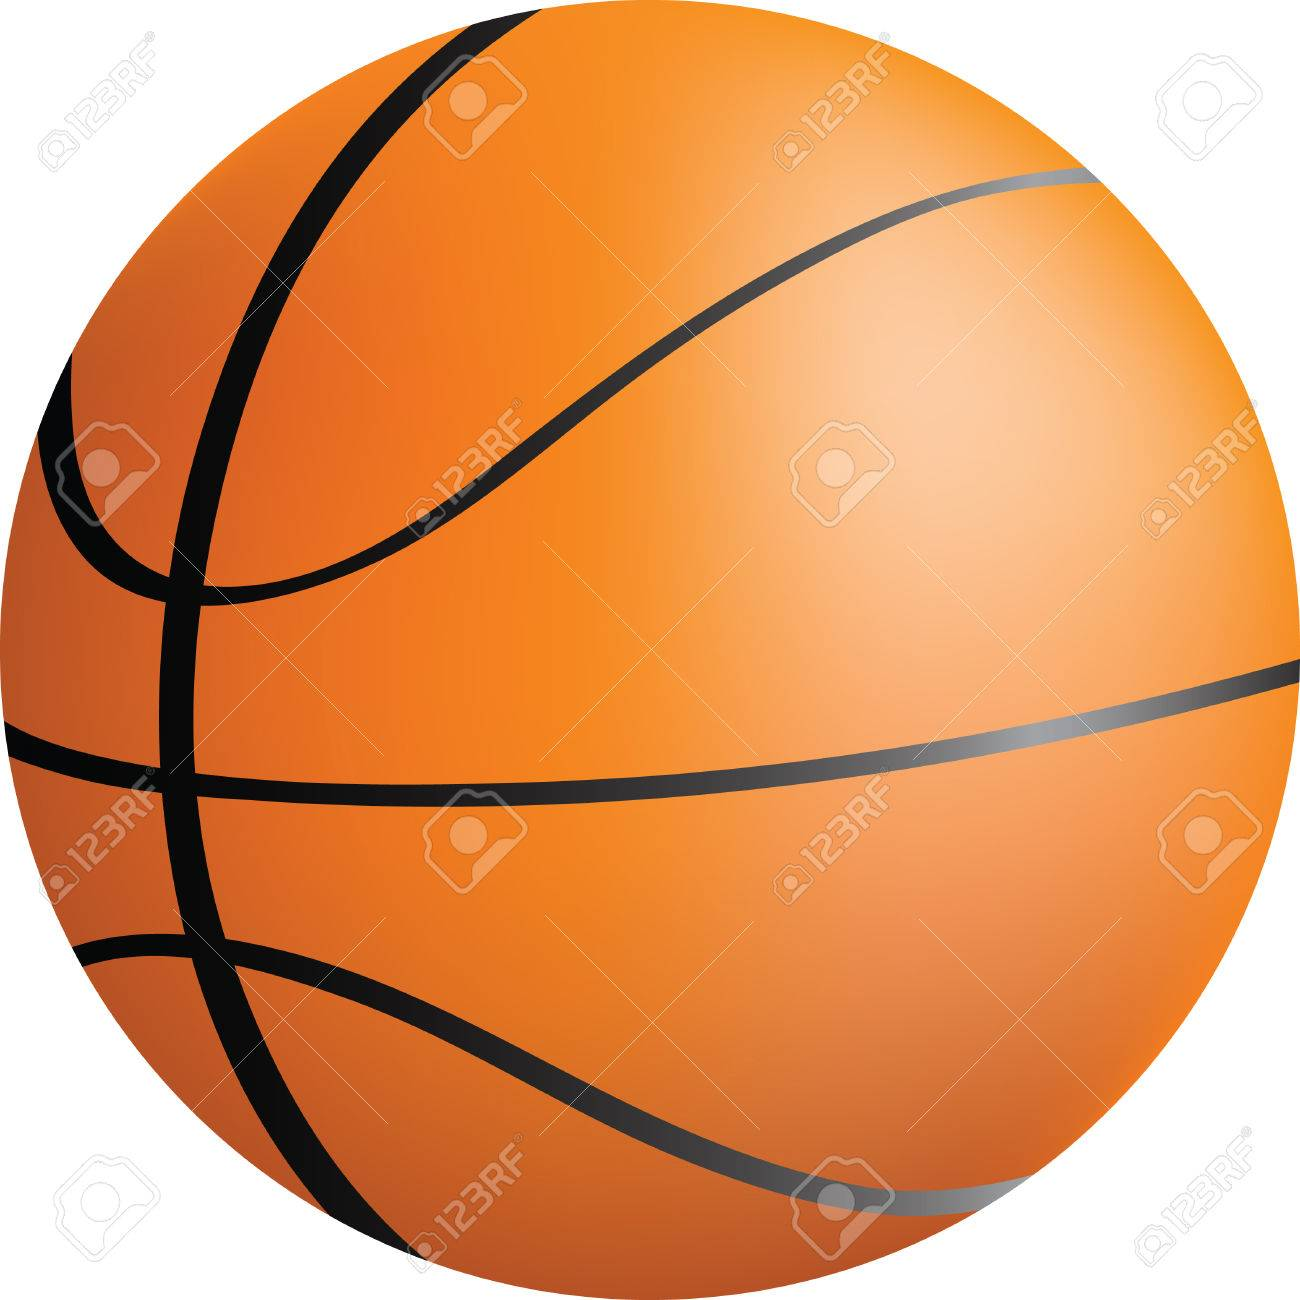 simple icon style illustration of a basket ball Stock Vector - 5789728